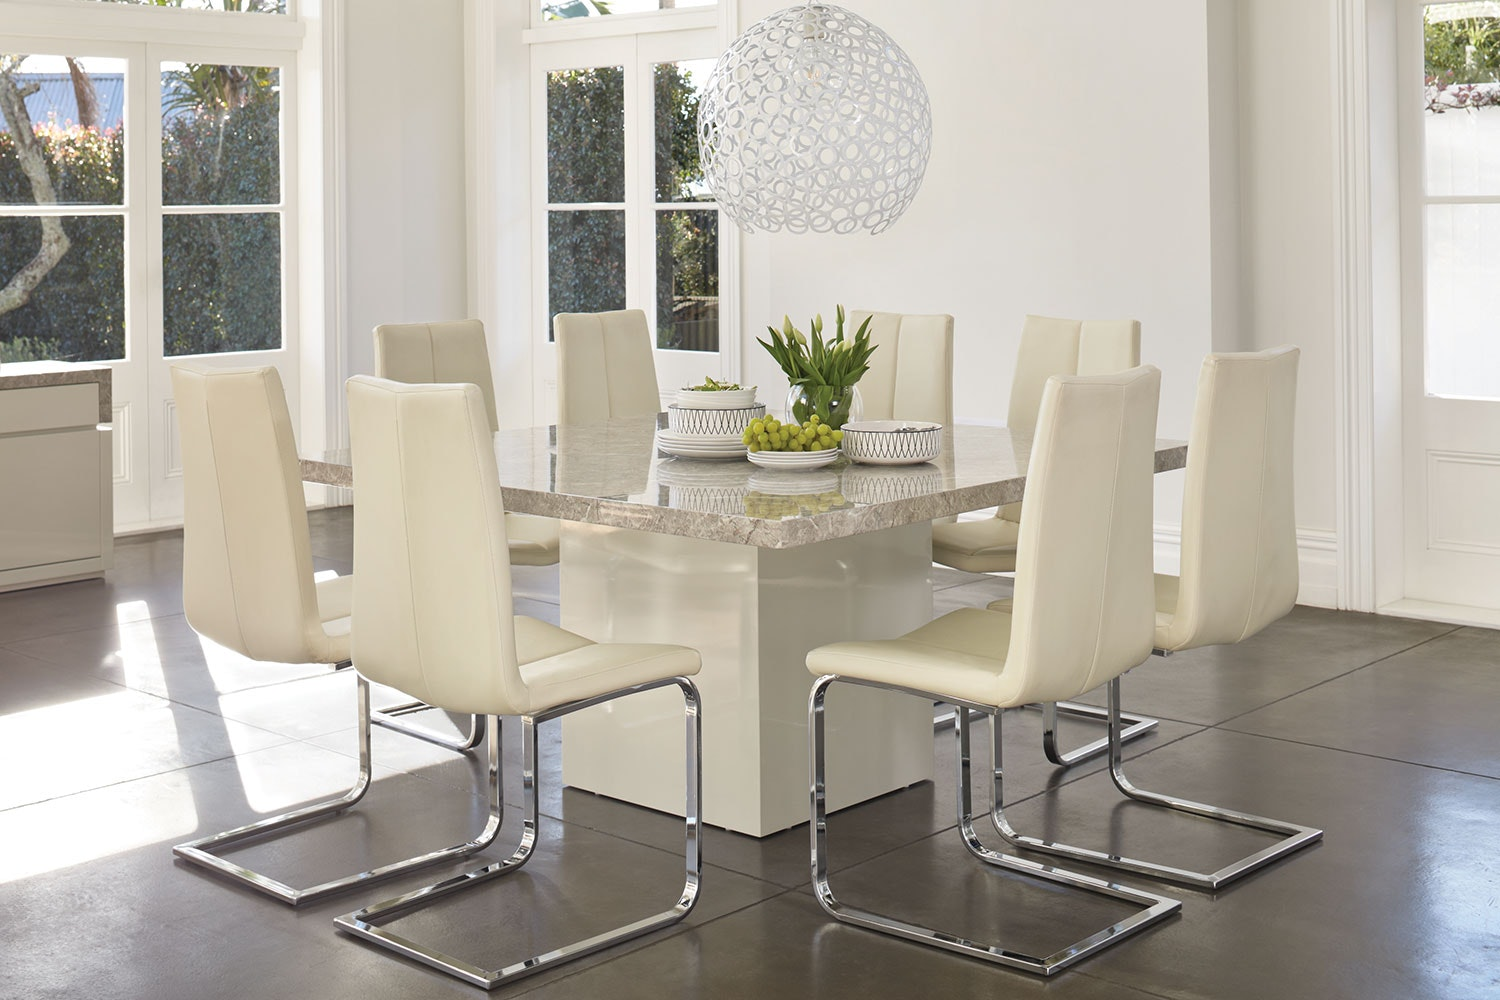 Marmo Square Dining Table By Insato Furniture Harvey Norman New Zealand